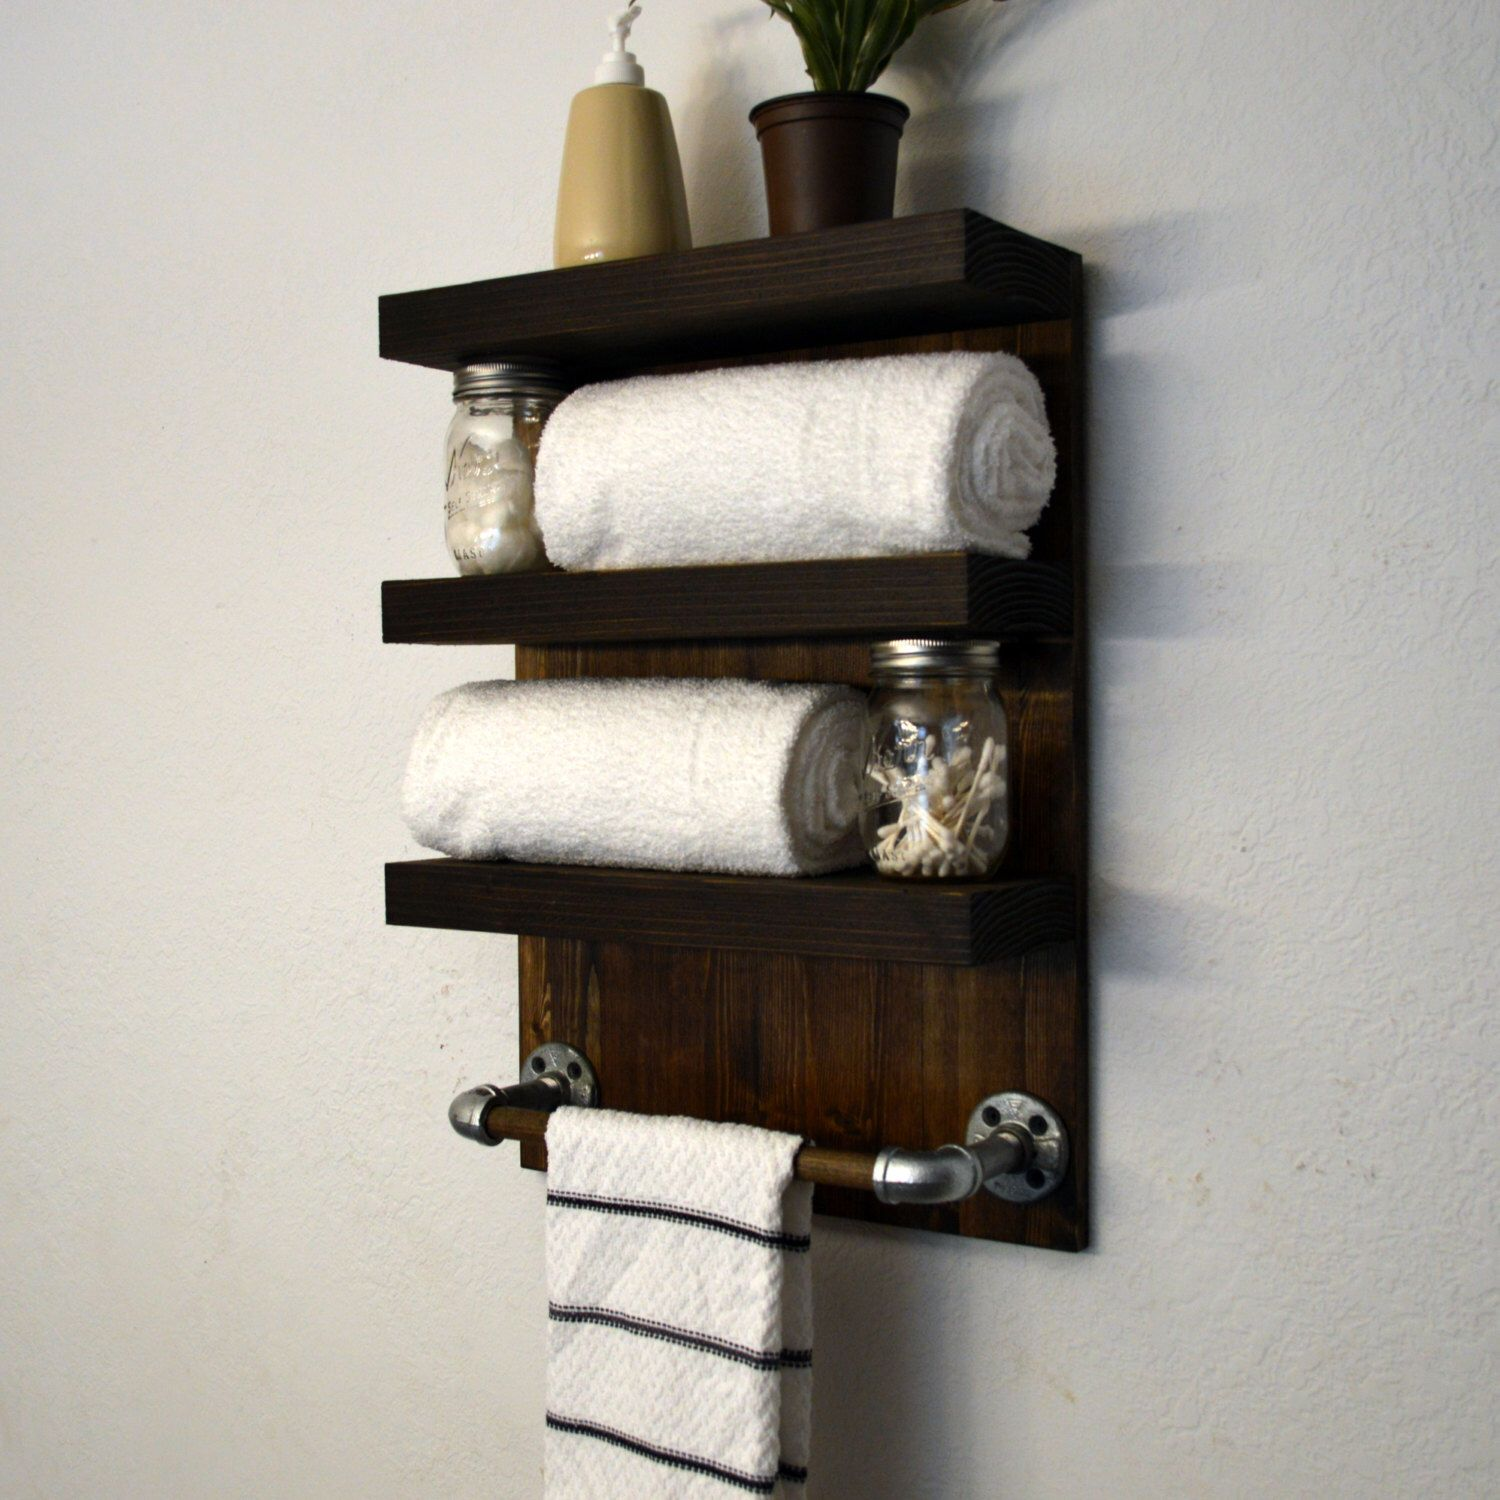 Three Tier Bathroom Shelf with Towel Hooks | Bathroom towels, Dark ...